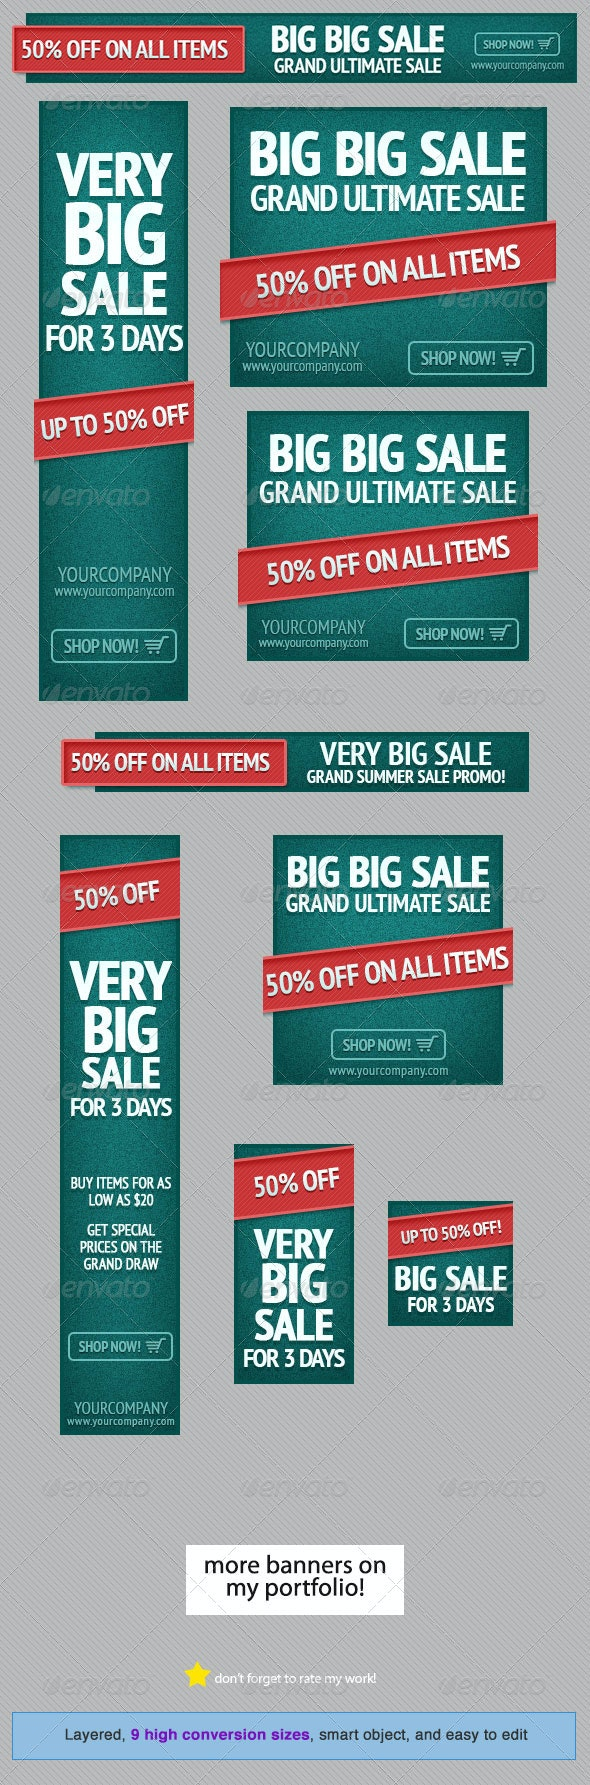 Green Event - Web Banner Design Template - Banners & Ads Web Elements